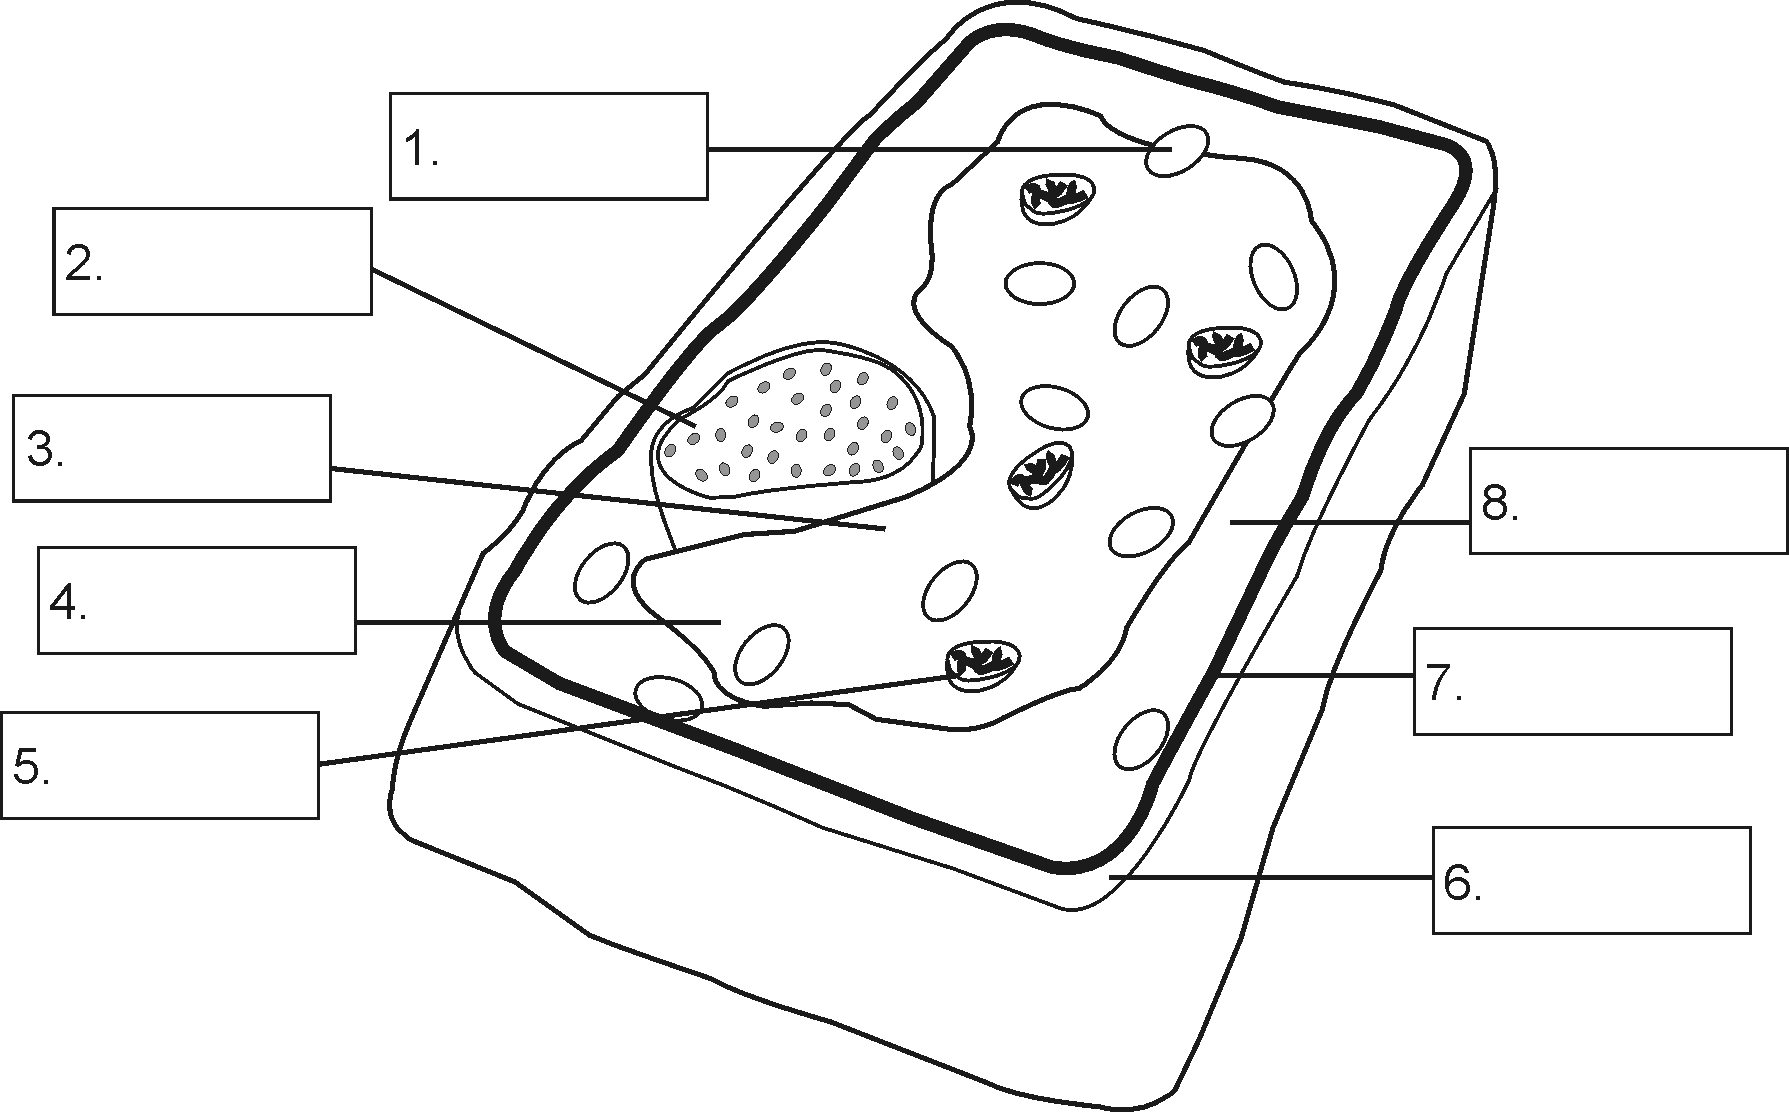 hight resolution of 1789x1112 simple plant cell drawing animal cell diagram blank bone cells